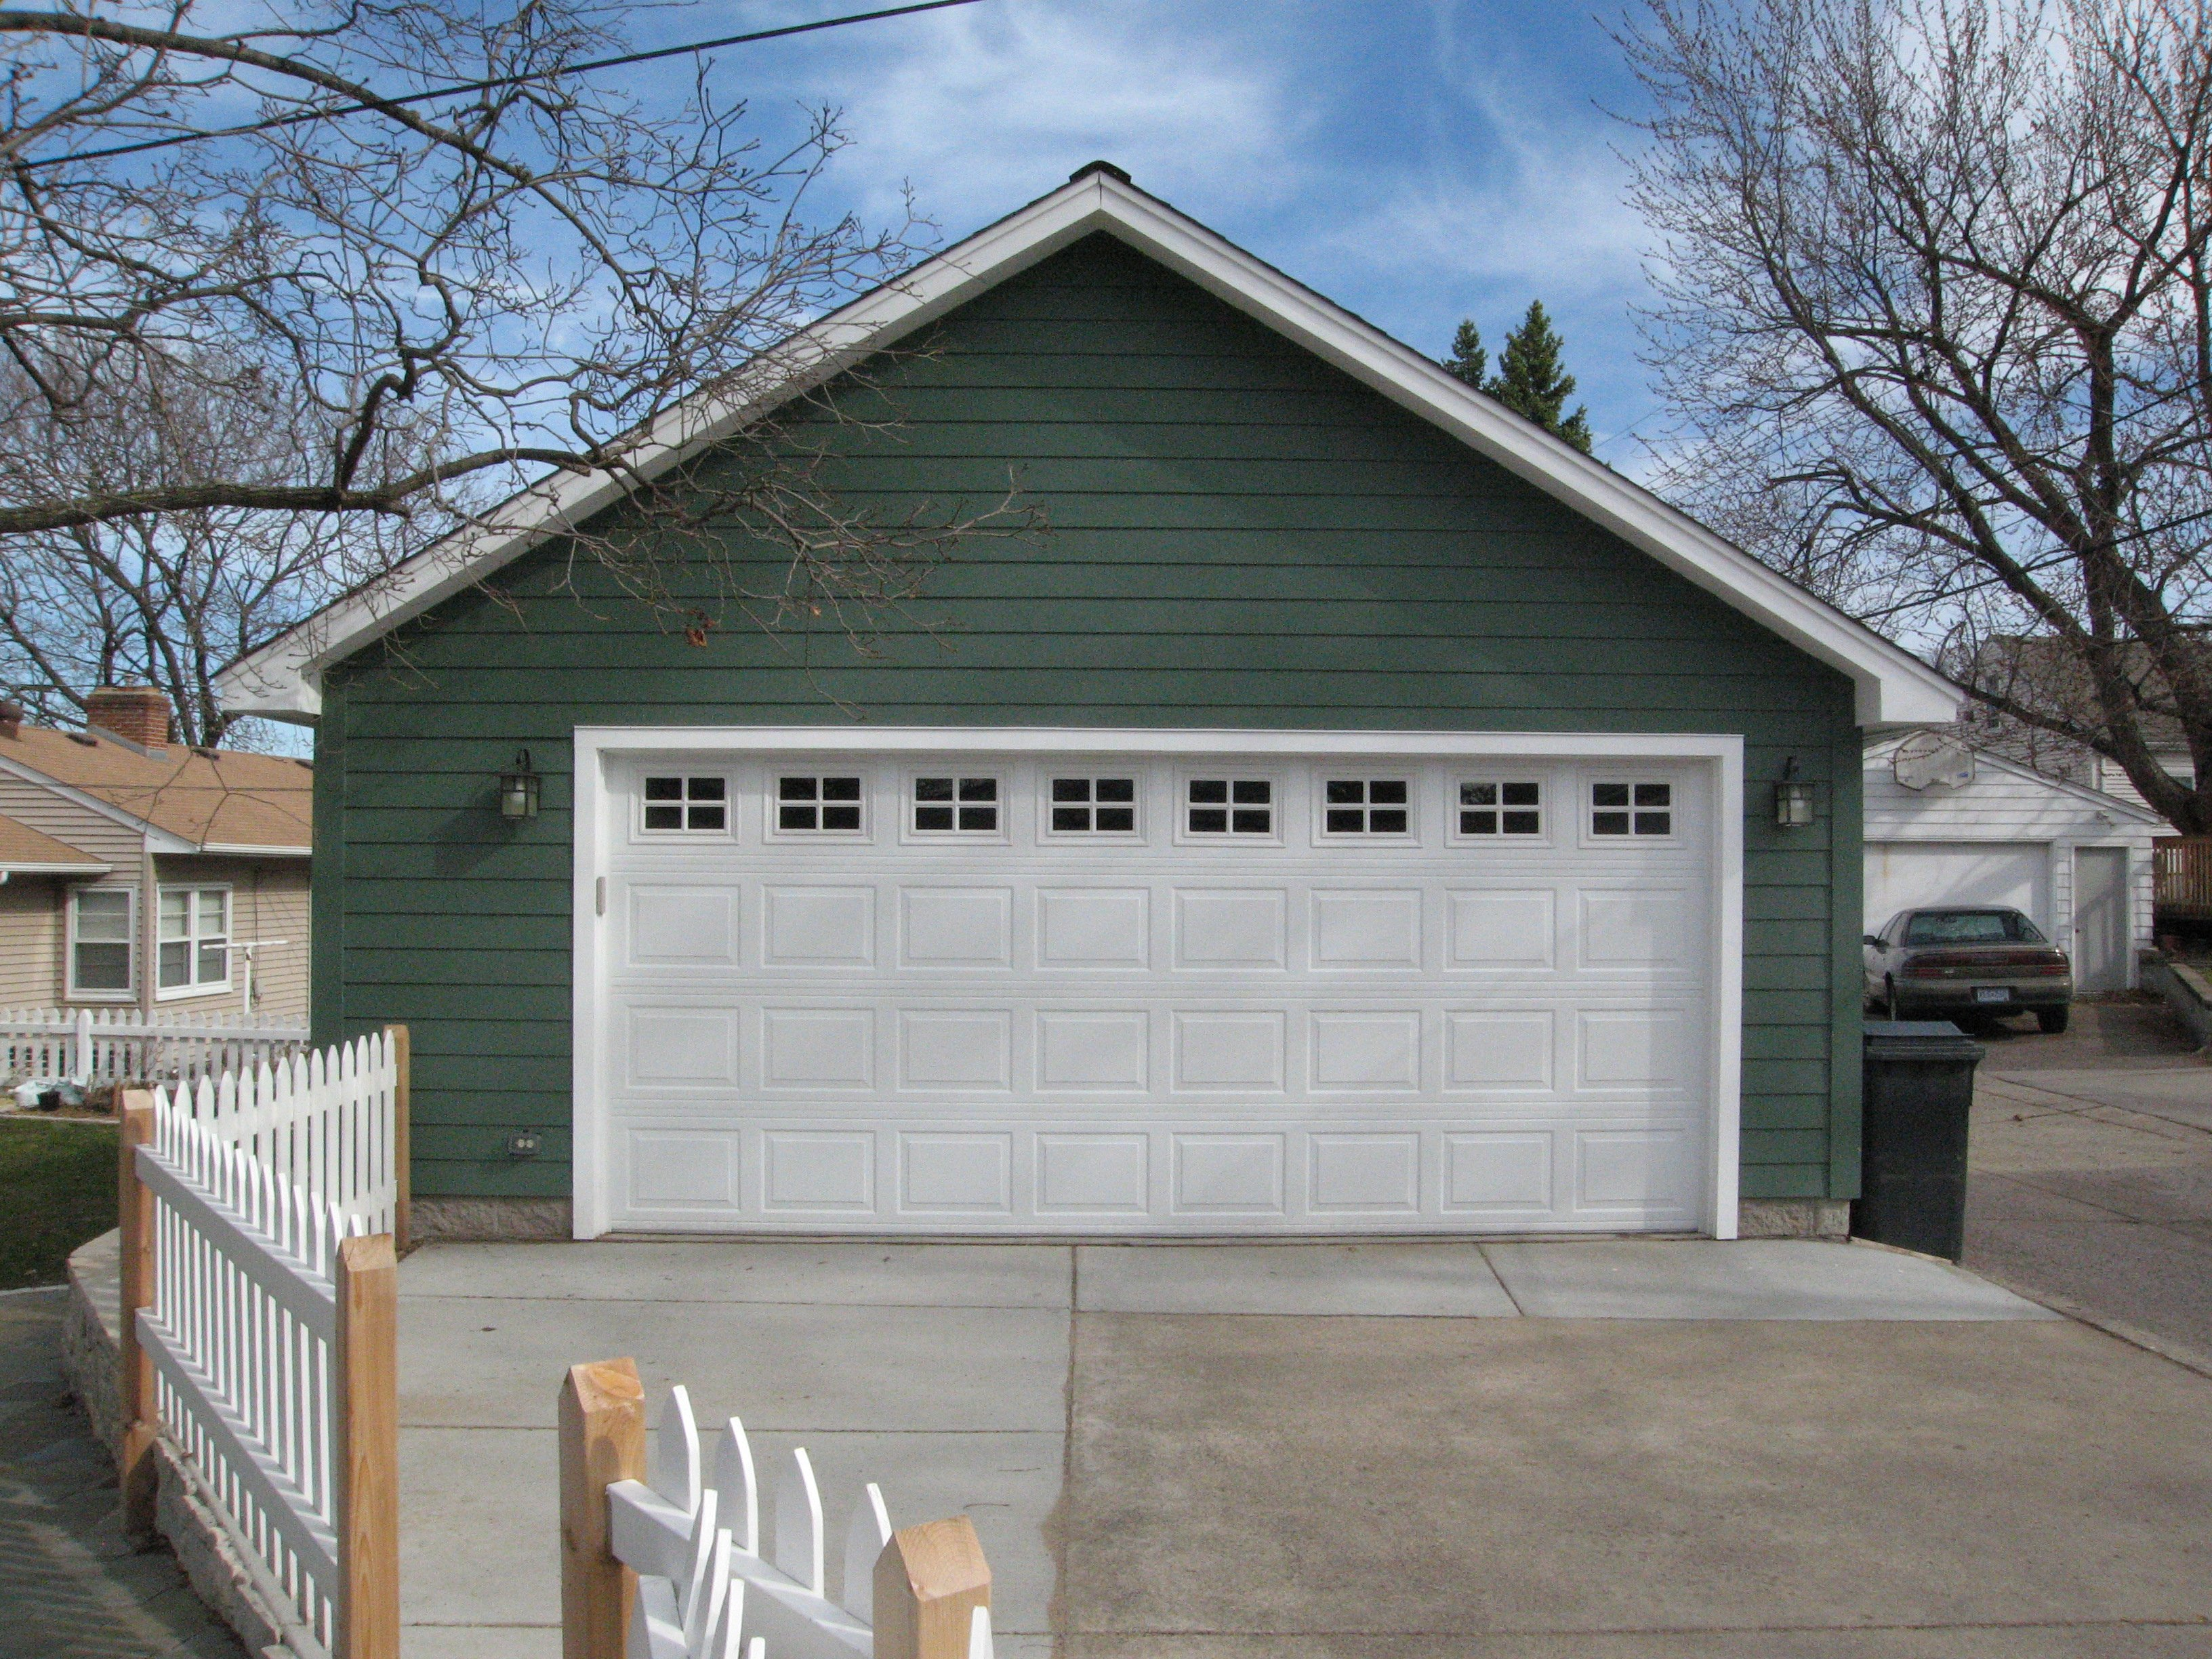 Free storage truss garage plans - Garage plans cost to build gallery ...